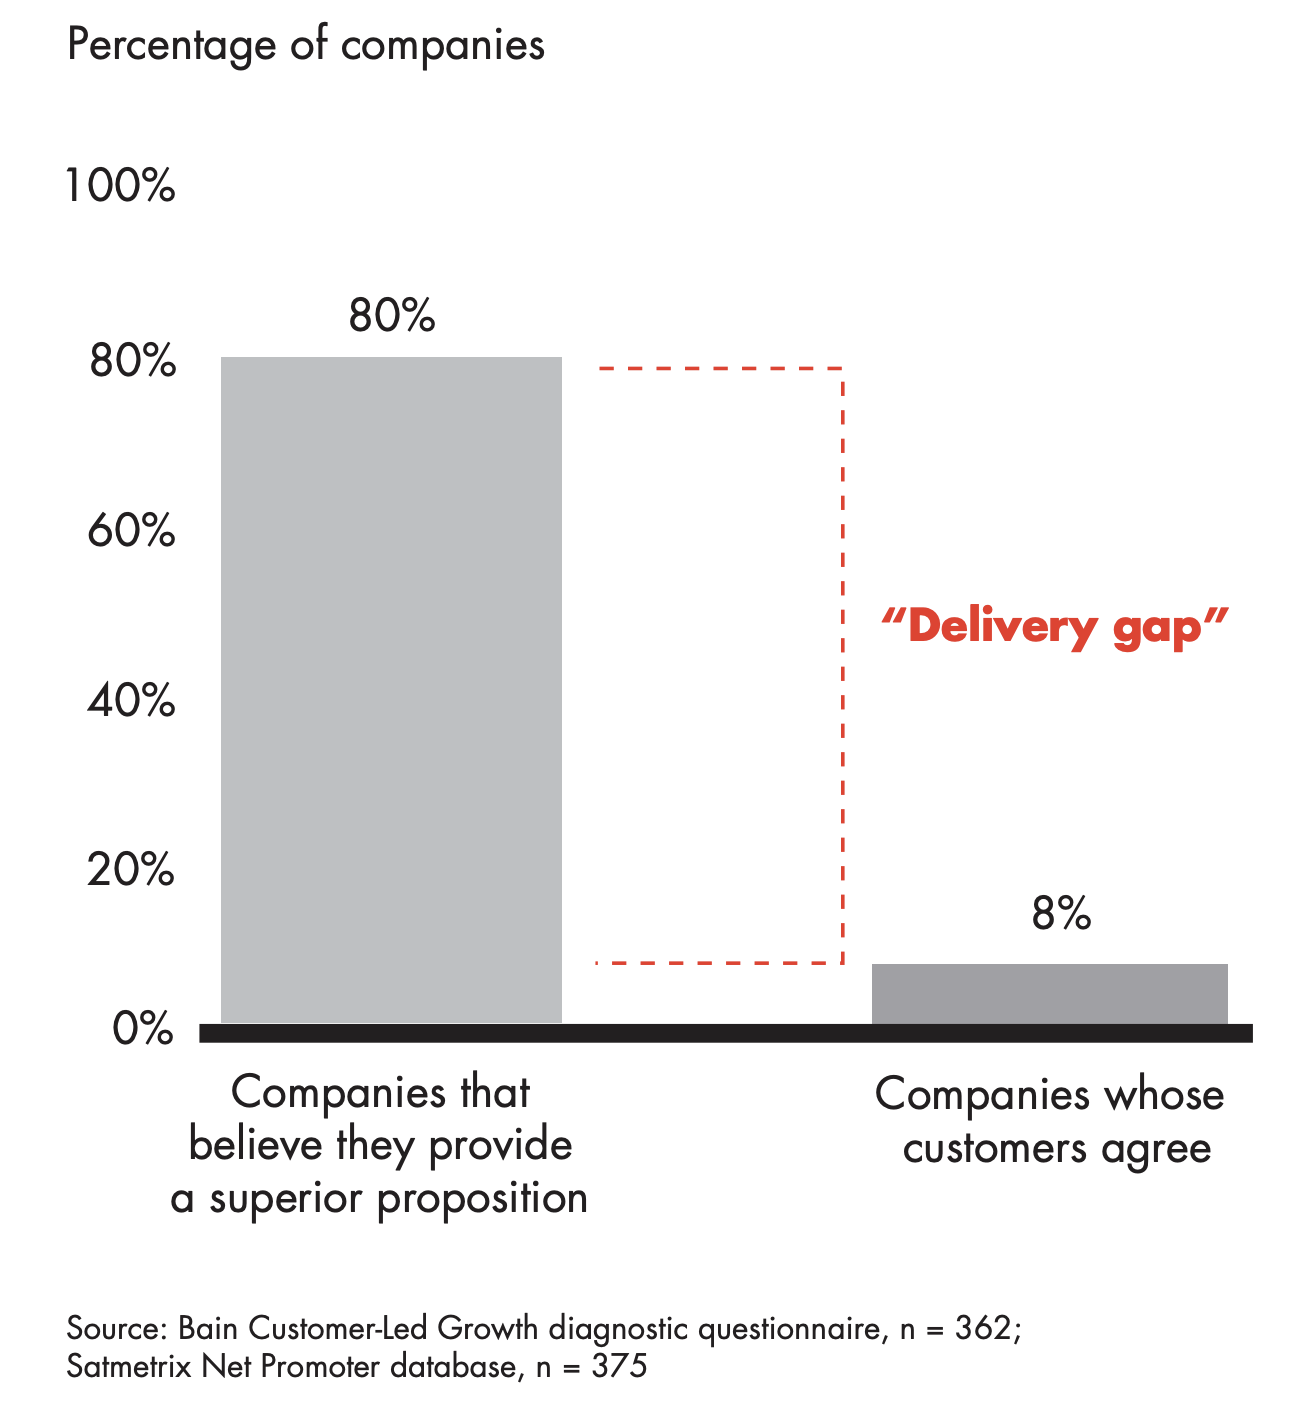 "Percentage of companies who deliver ""superior experiences"" (80%) vs. the percent of their customers who agree (8%). Delivery gap highlighted between two bars."